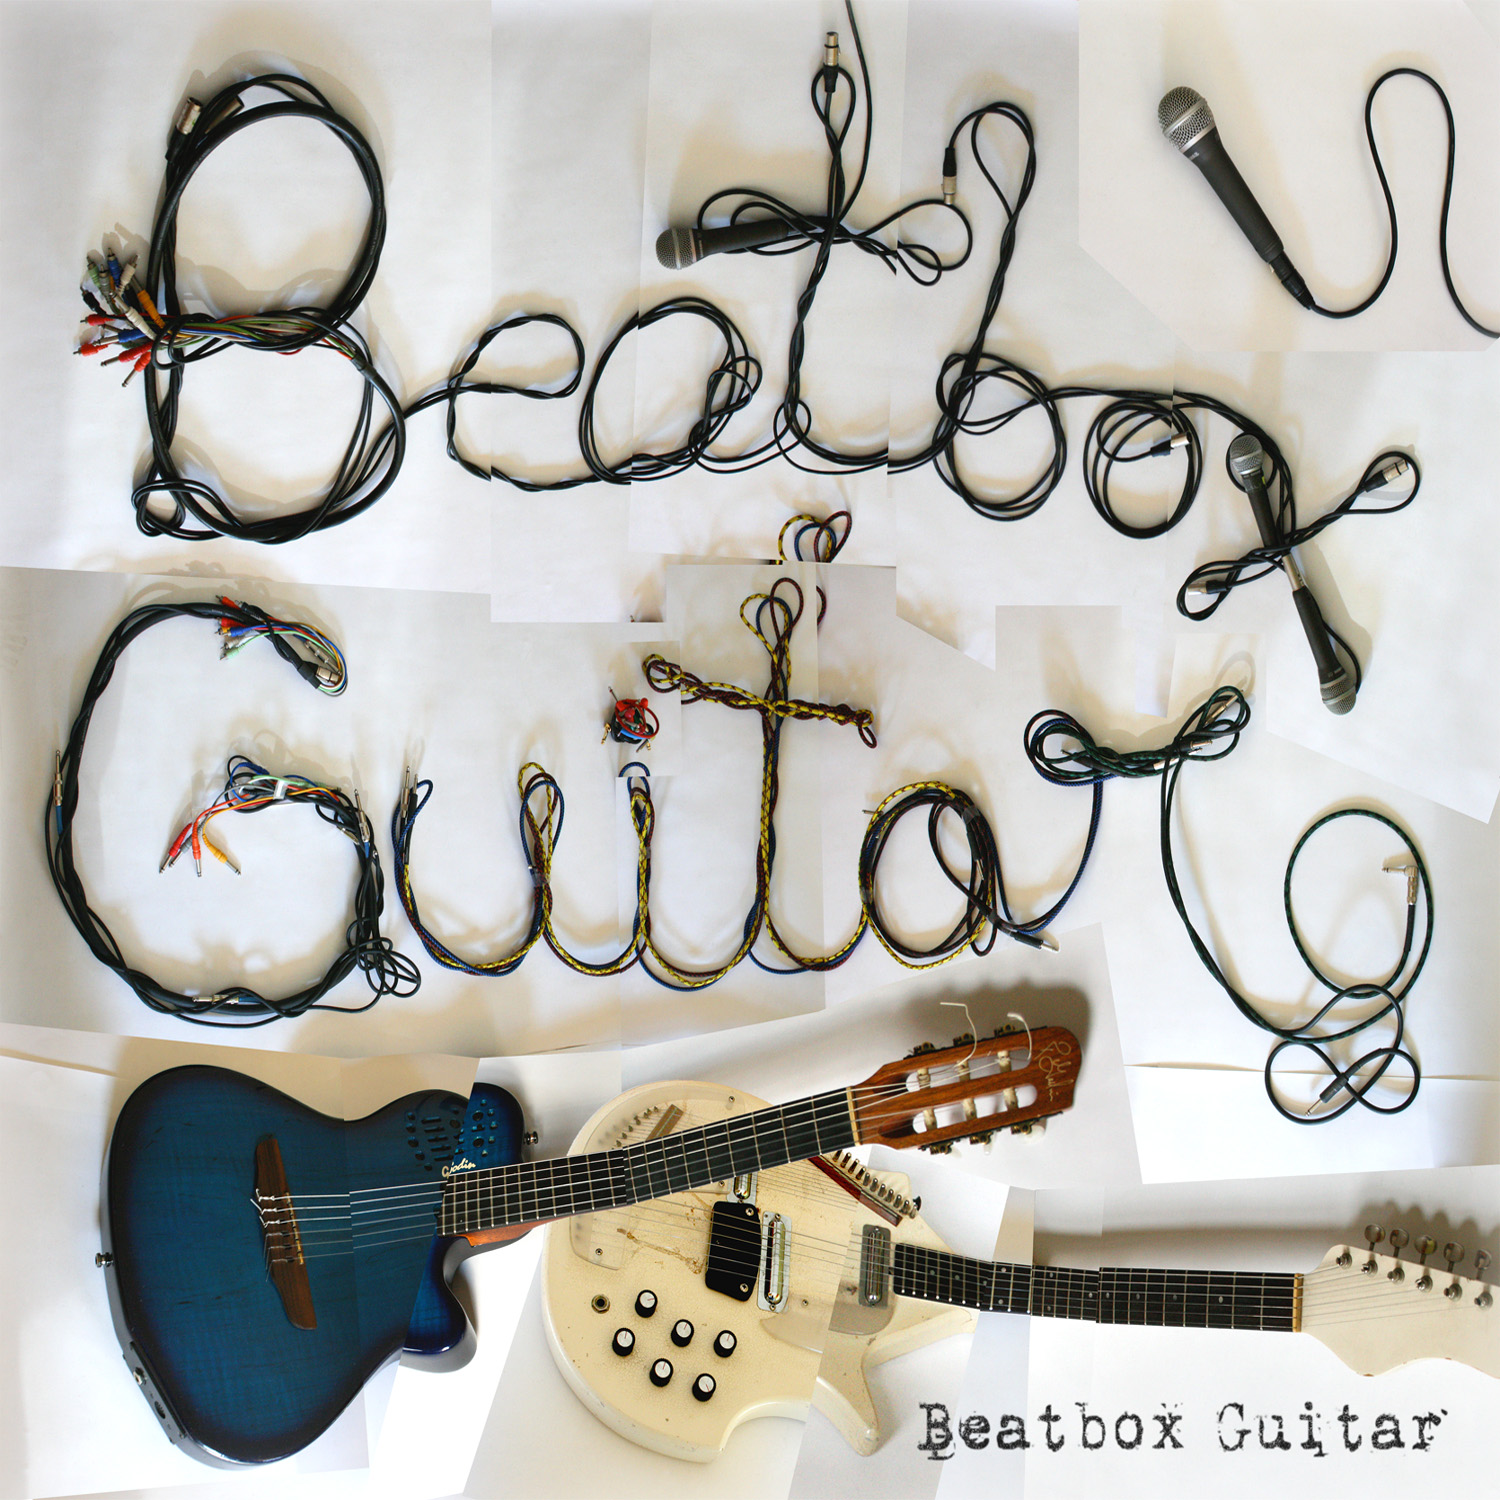 Beatbox_Guitar_sq.jpg